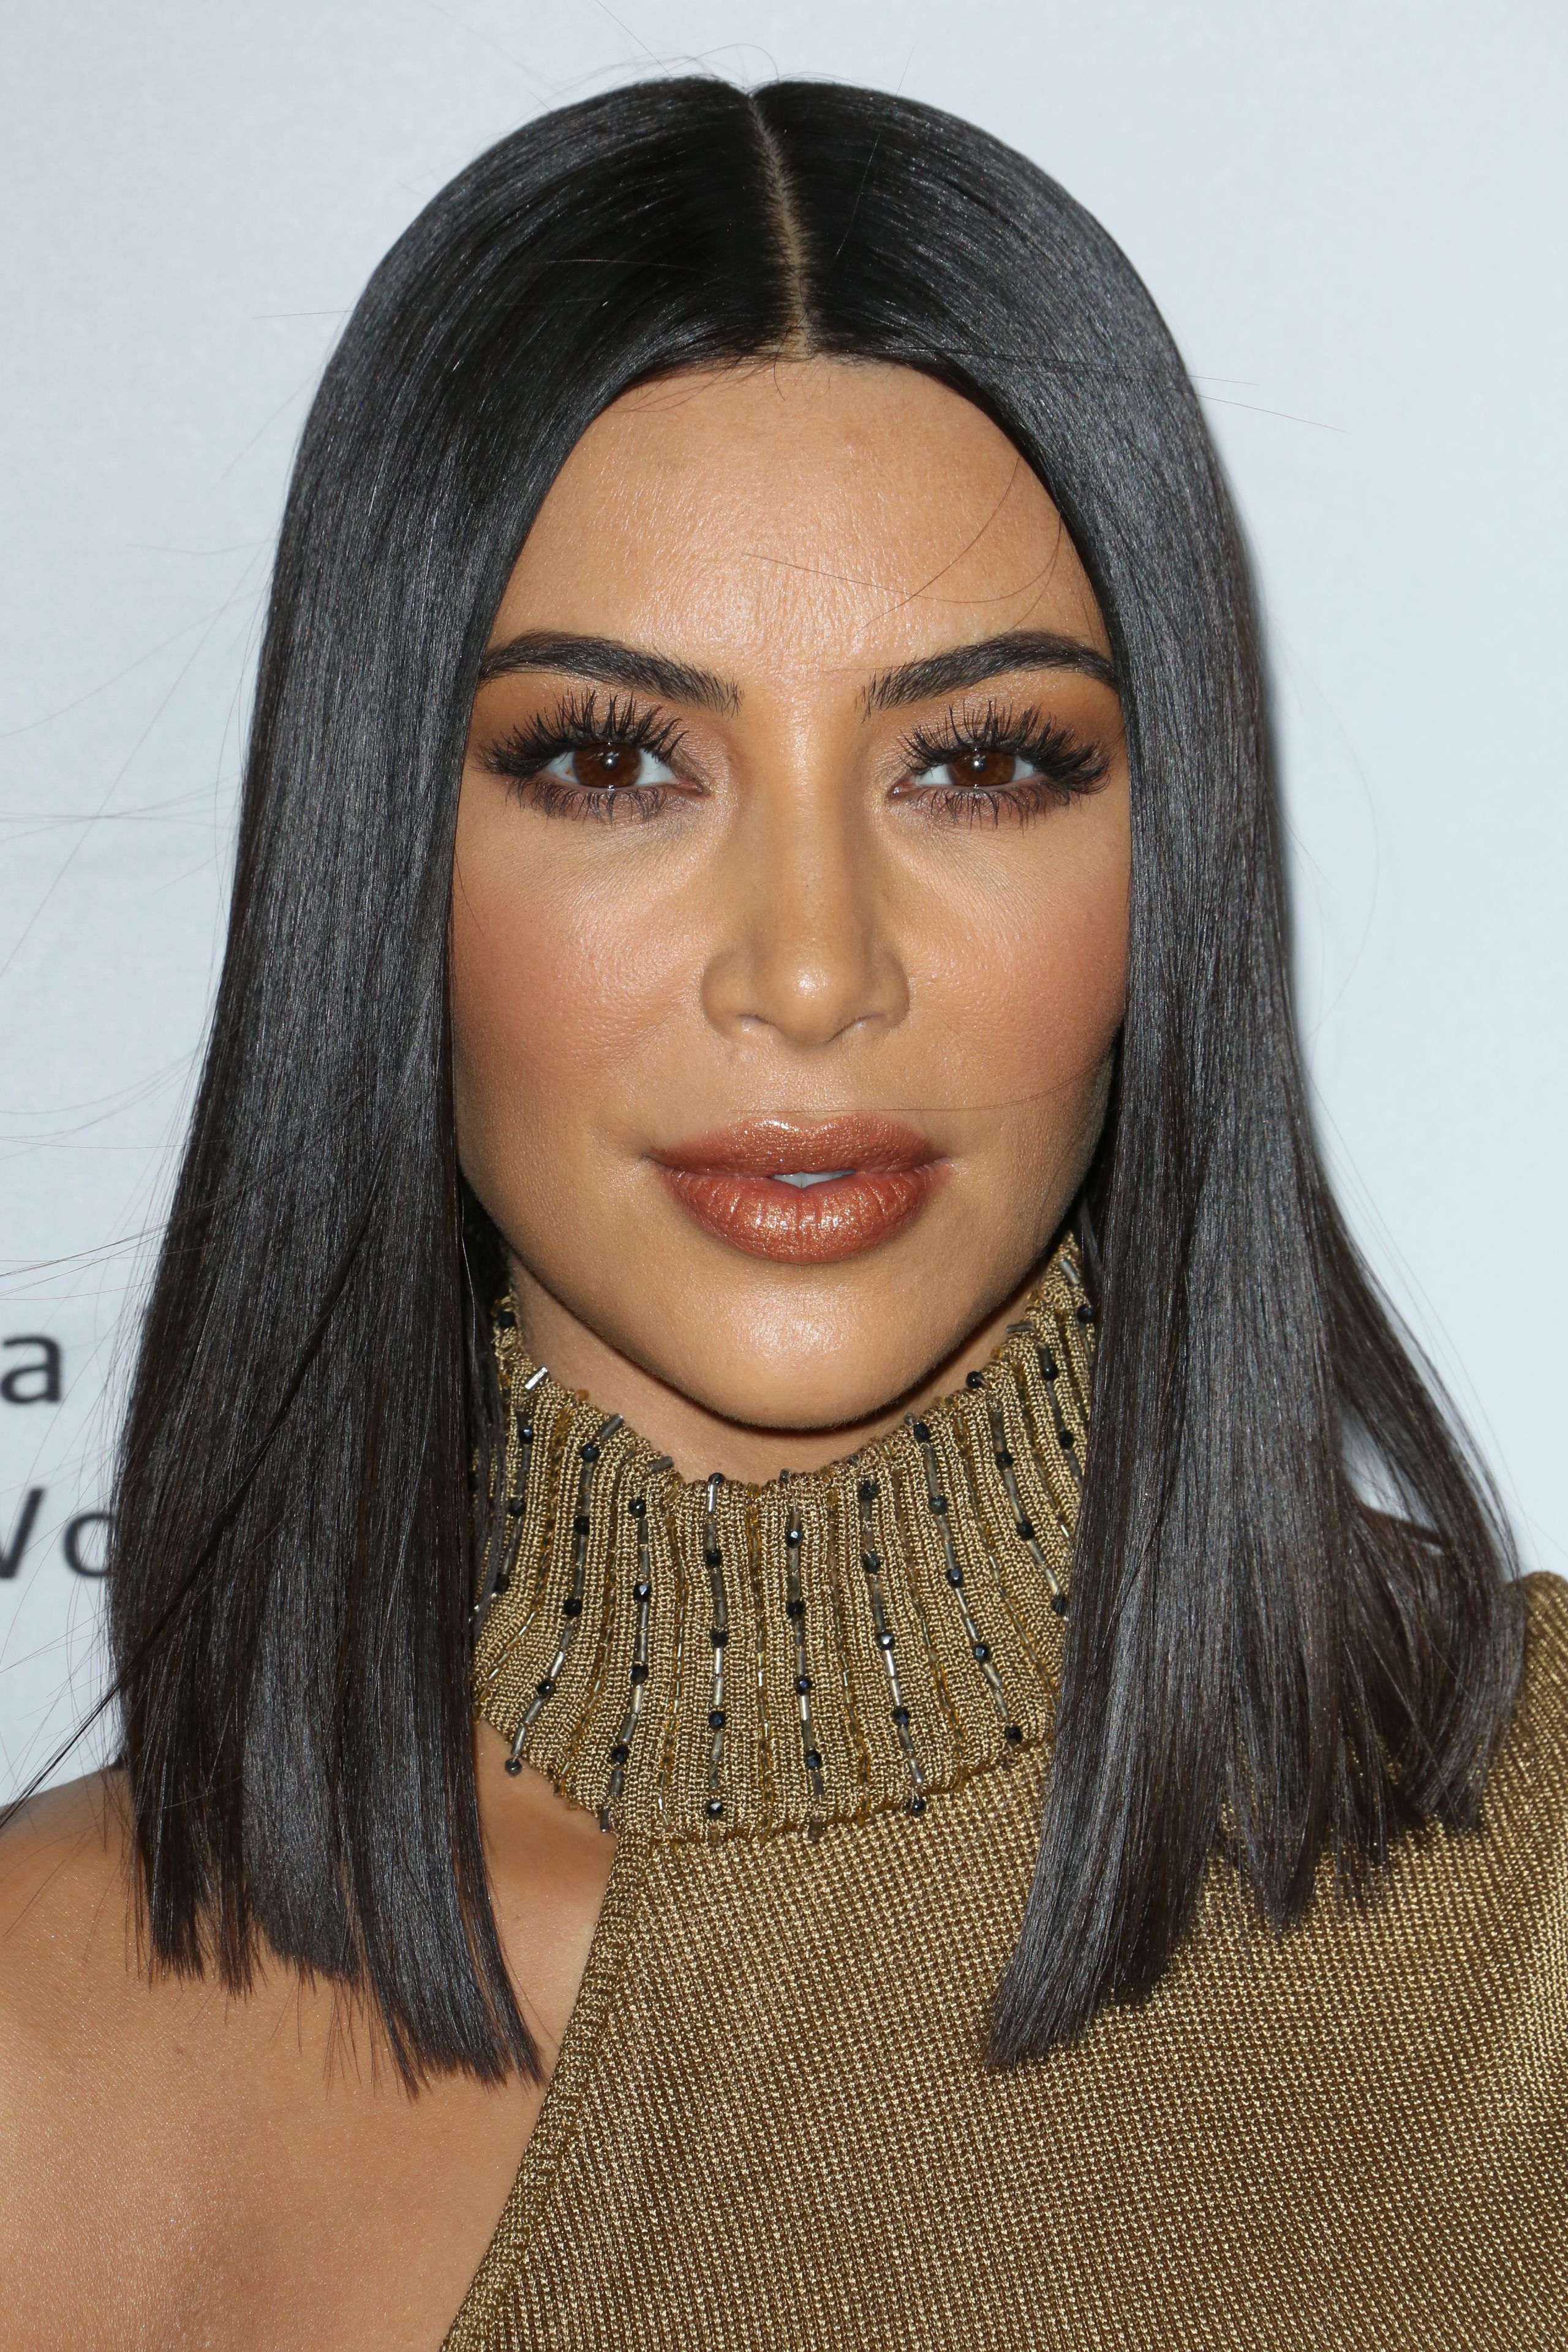 39 Bob Hairstyles For 2019 Bob Haircuts To Copy This Year